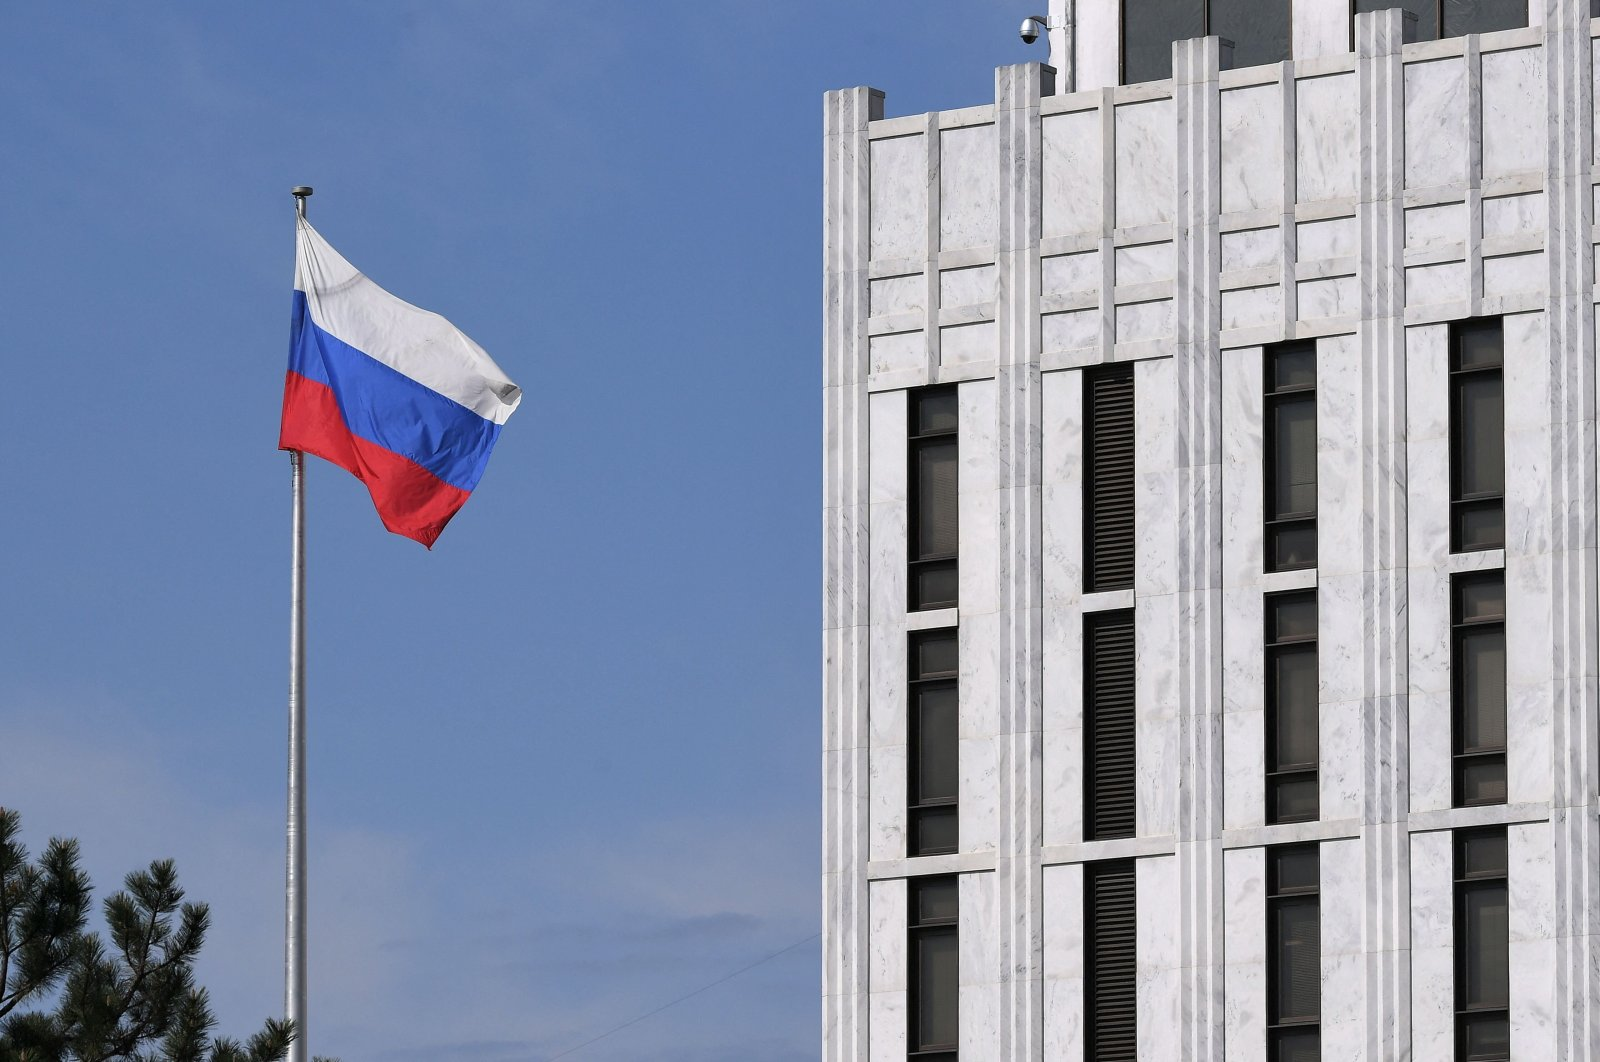 The Russian flag flies at the embassy's compound in Washington, D.C., the U.S., April 15, 2021. (AFP Photo)